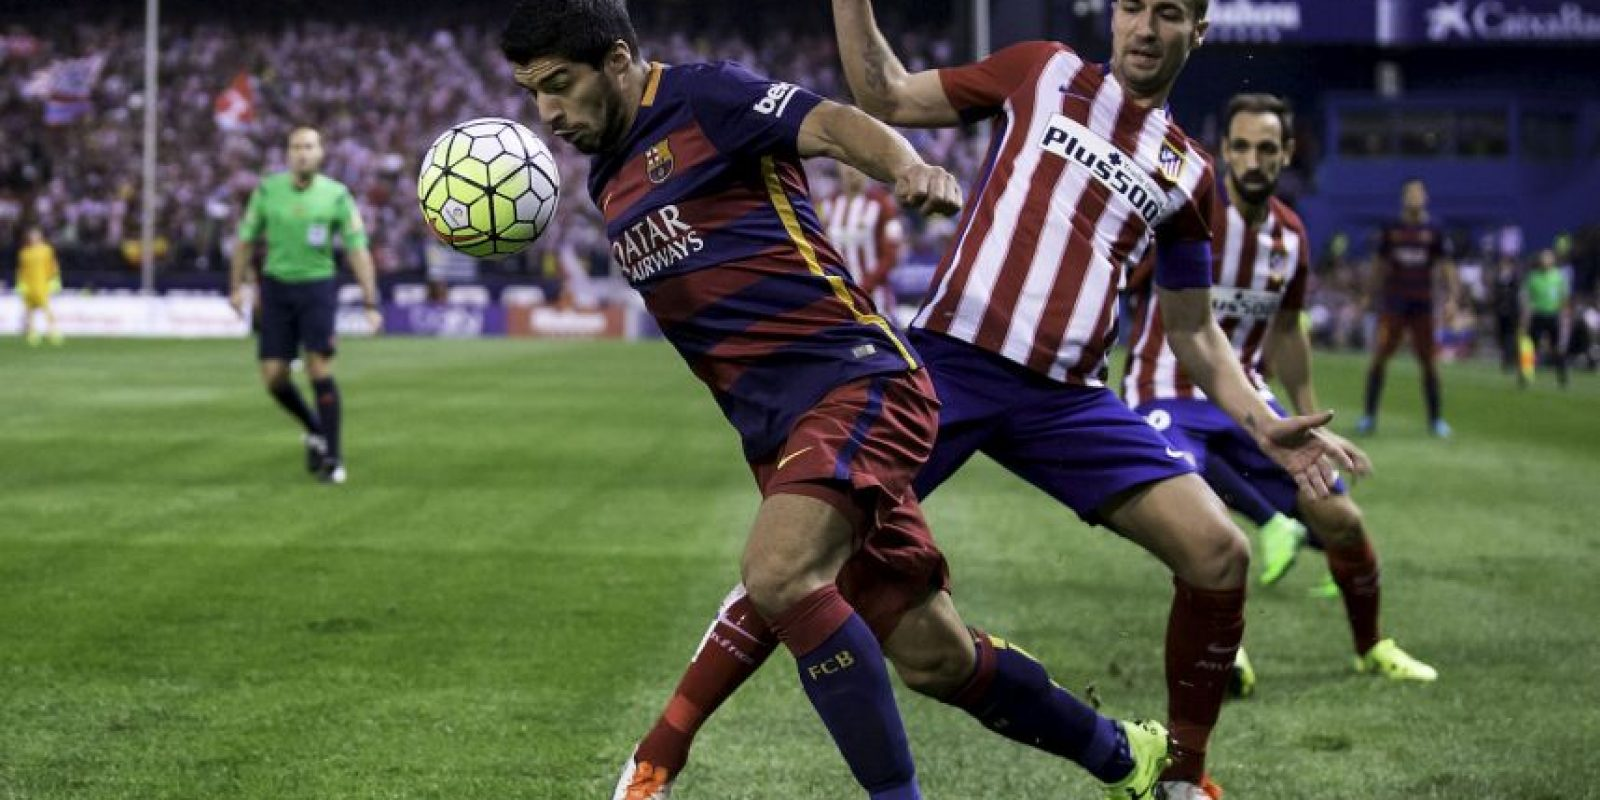 Barcelona vs. Atlético de Madrid Foto: Getty Images